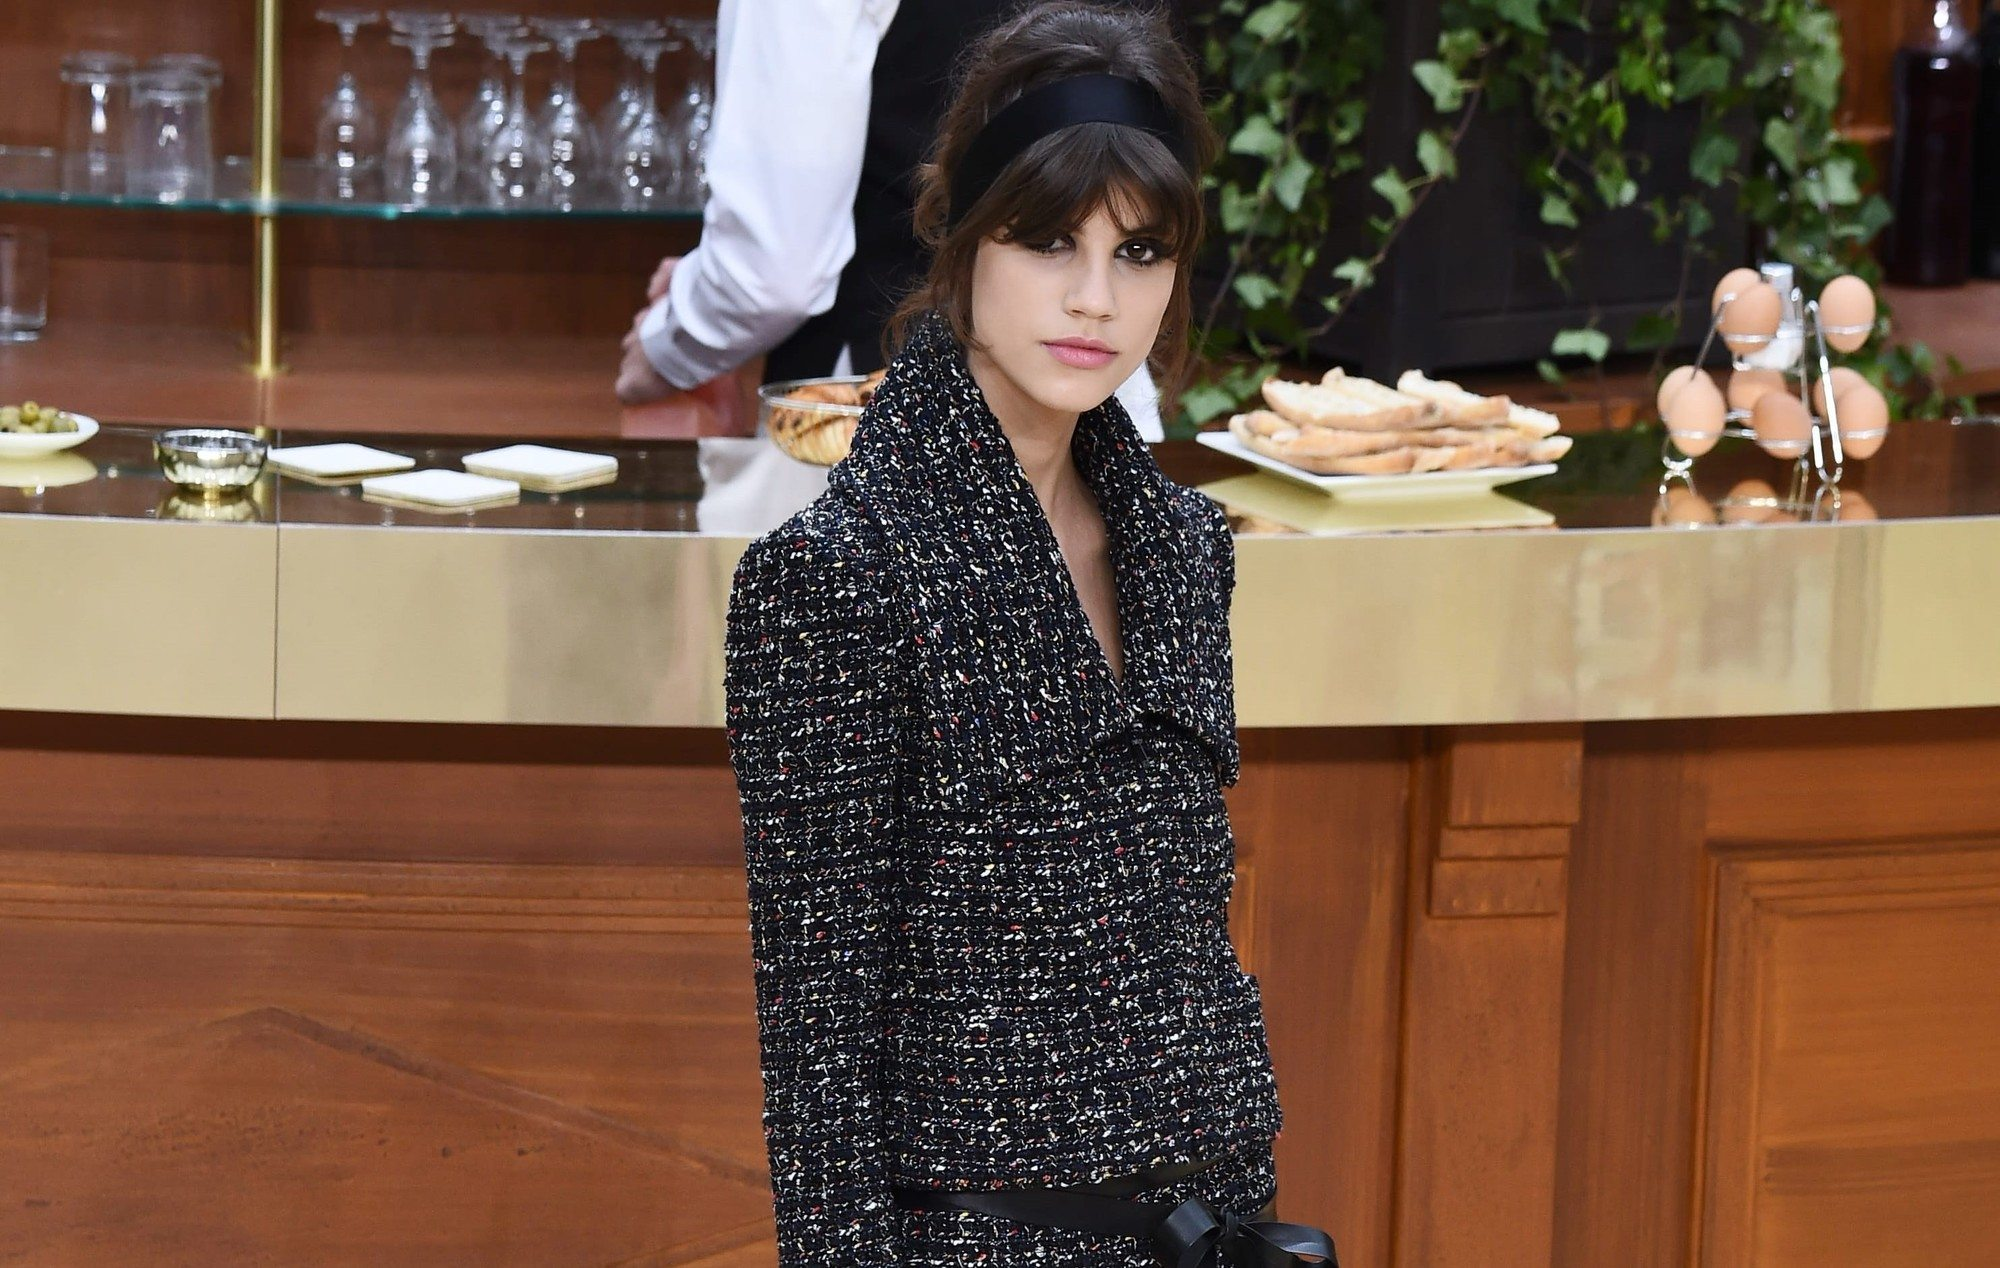 close up shot of model on the chanel runway with mini bouffant hairstyle with headband hair accessory, wearing smart suit outfit